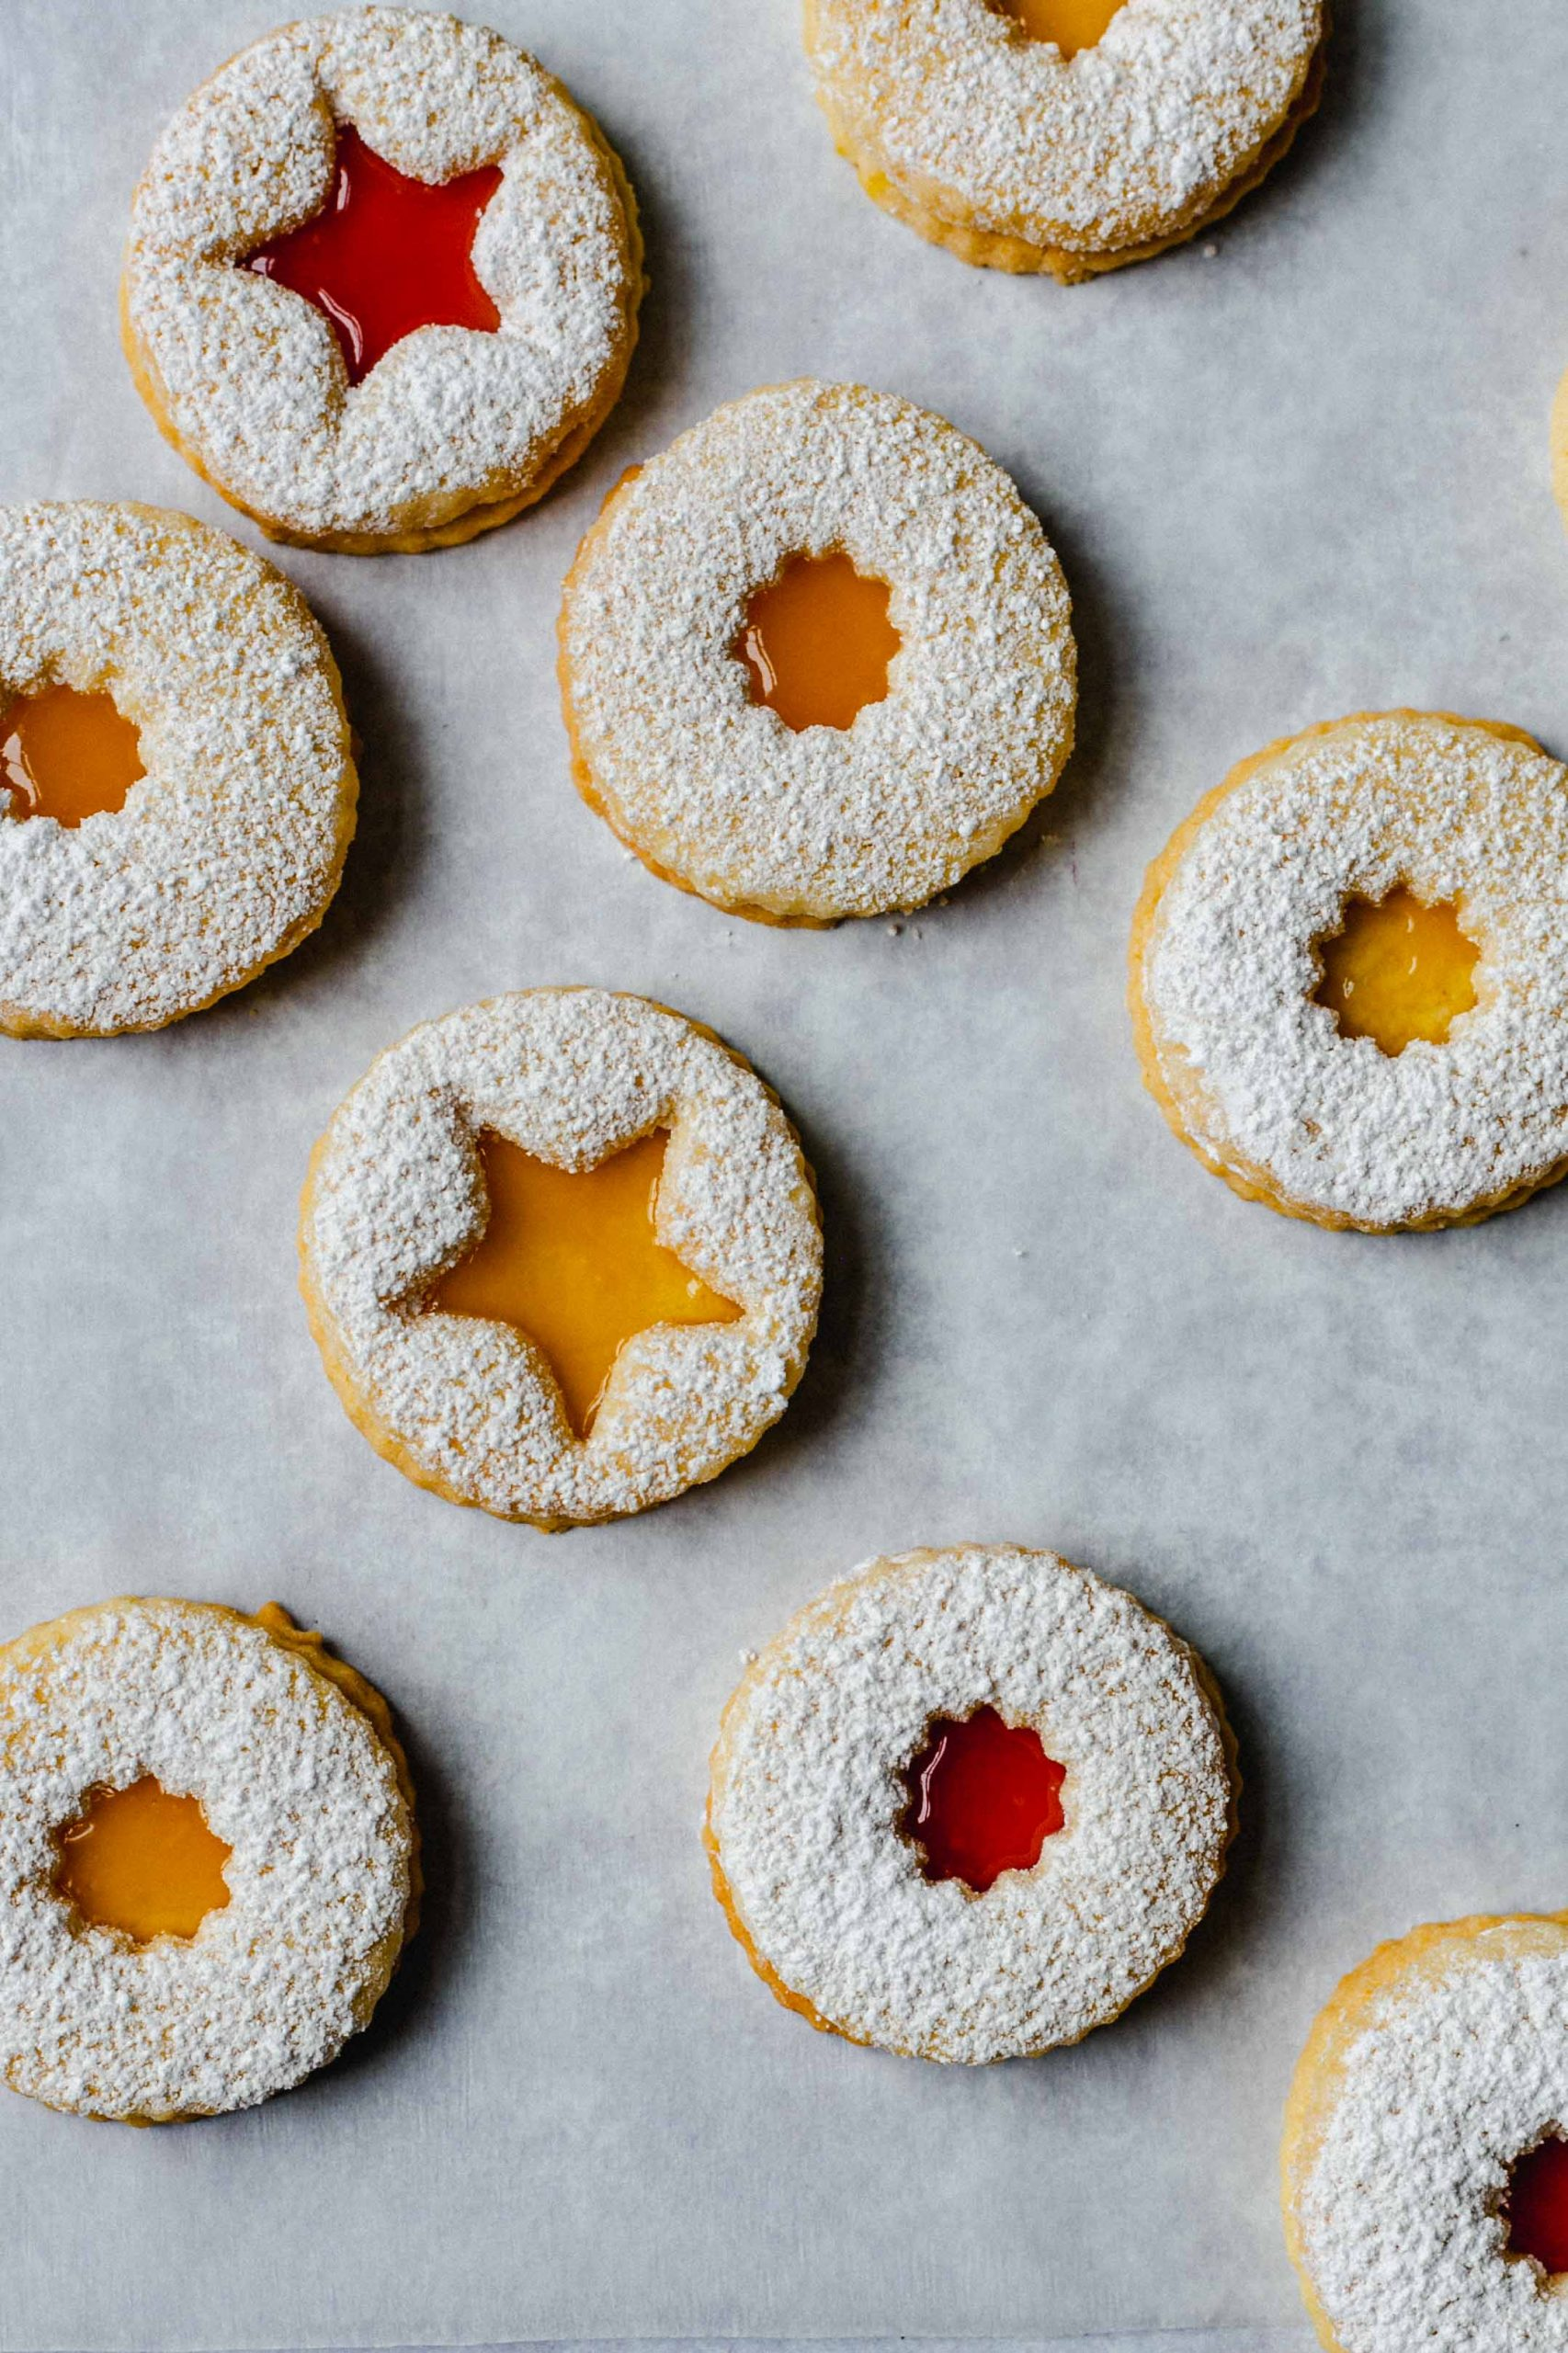 Gluten free Linzer cookies with curd Low FODMAP close up